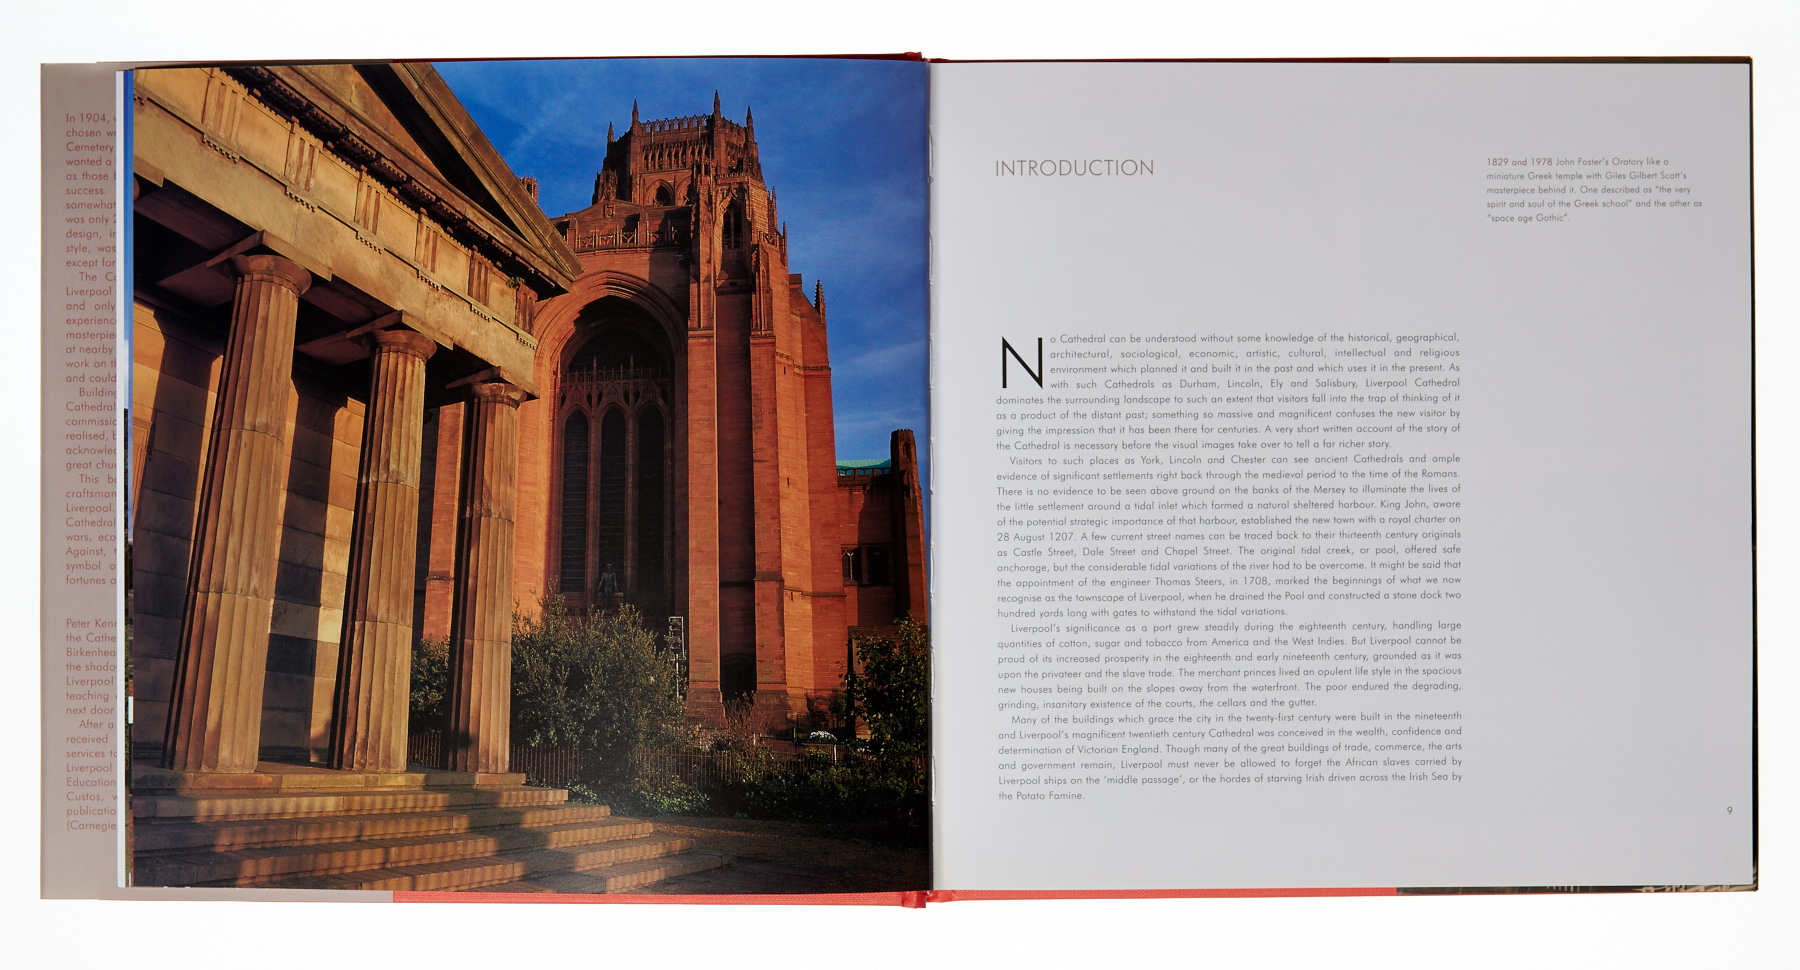 liverpool-cathedral-book-page-09.jpg